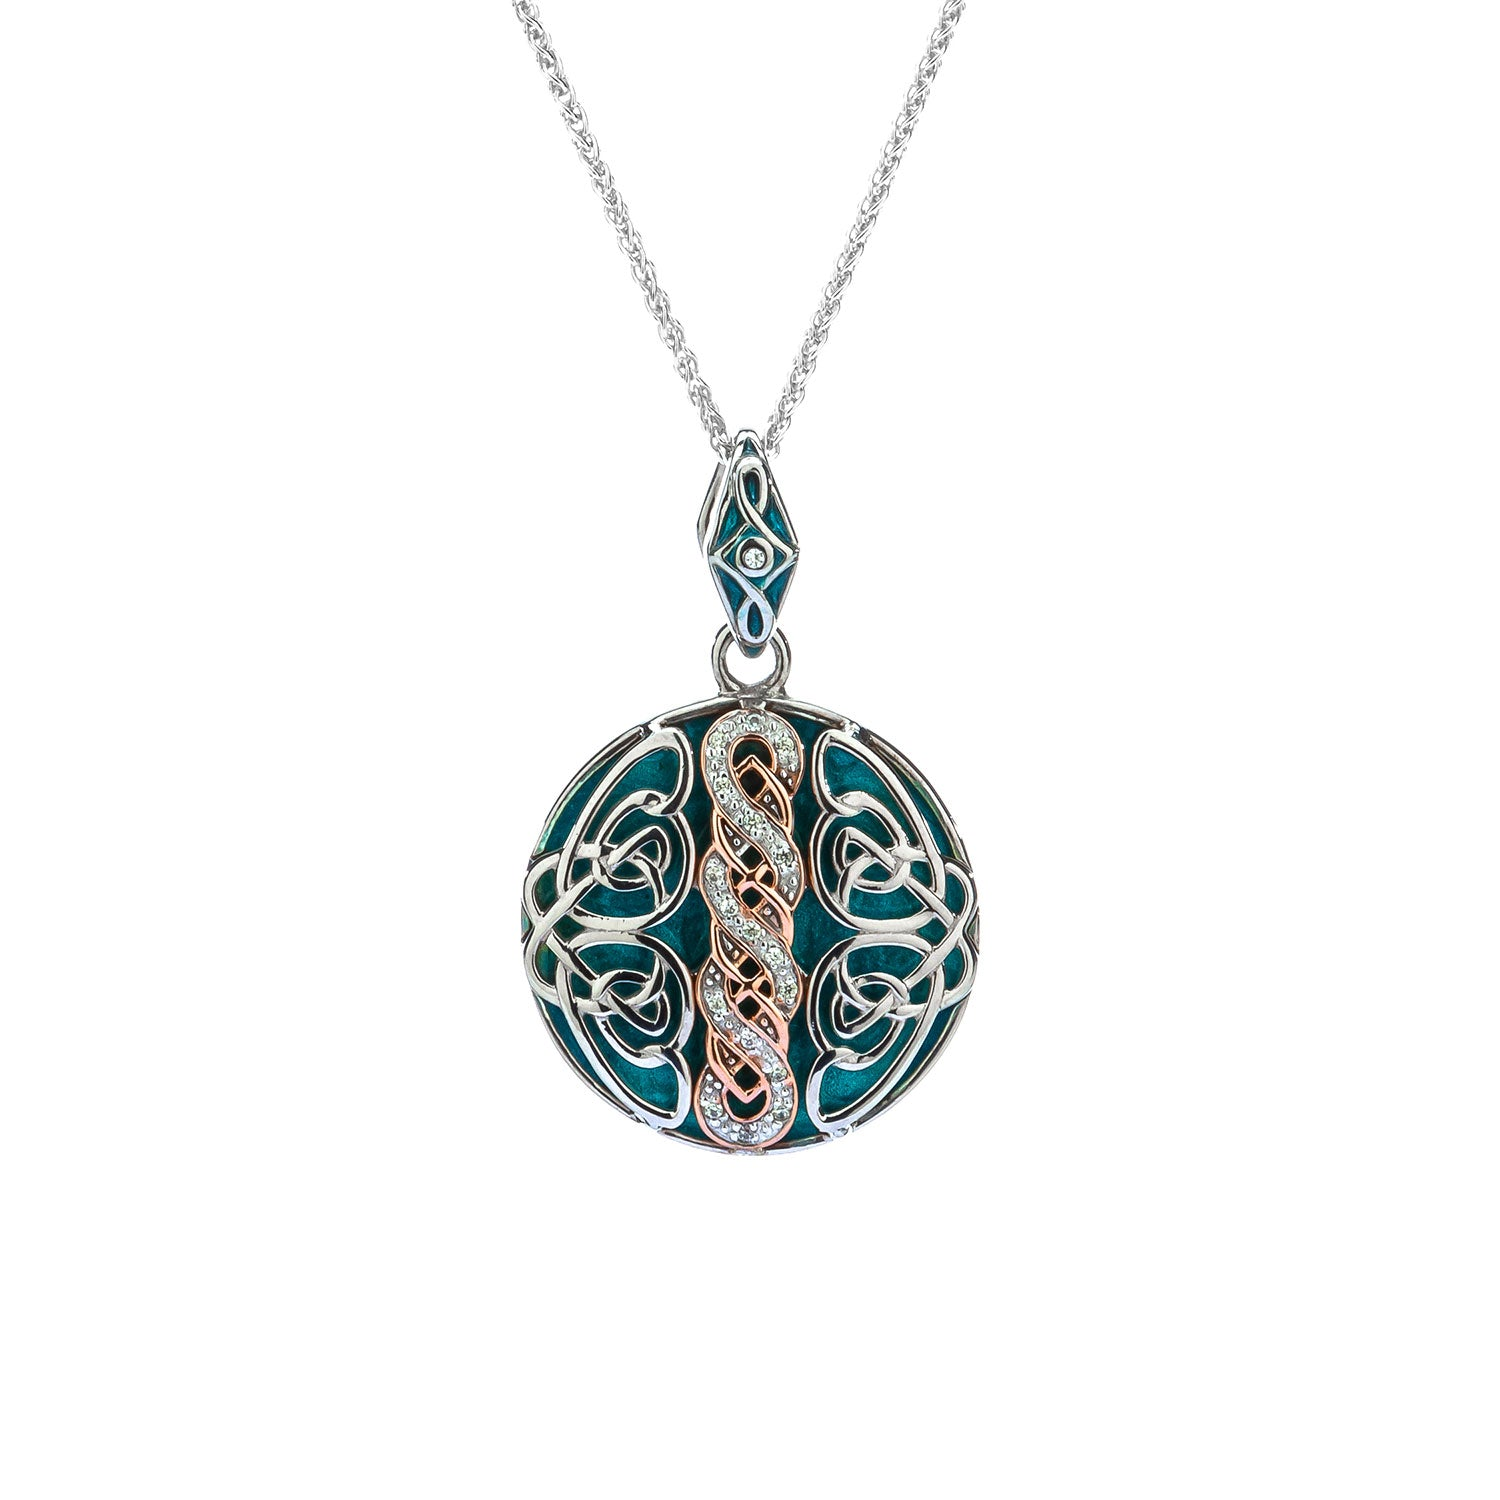 Pendant 10k Rose Sky Blue Enamel Black & White CZ Norse Knotwork Reversible Pendant from welch and company jewelers near syracuse ny